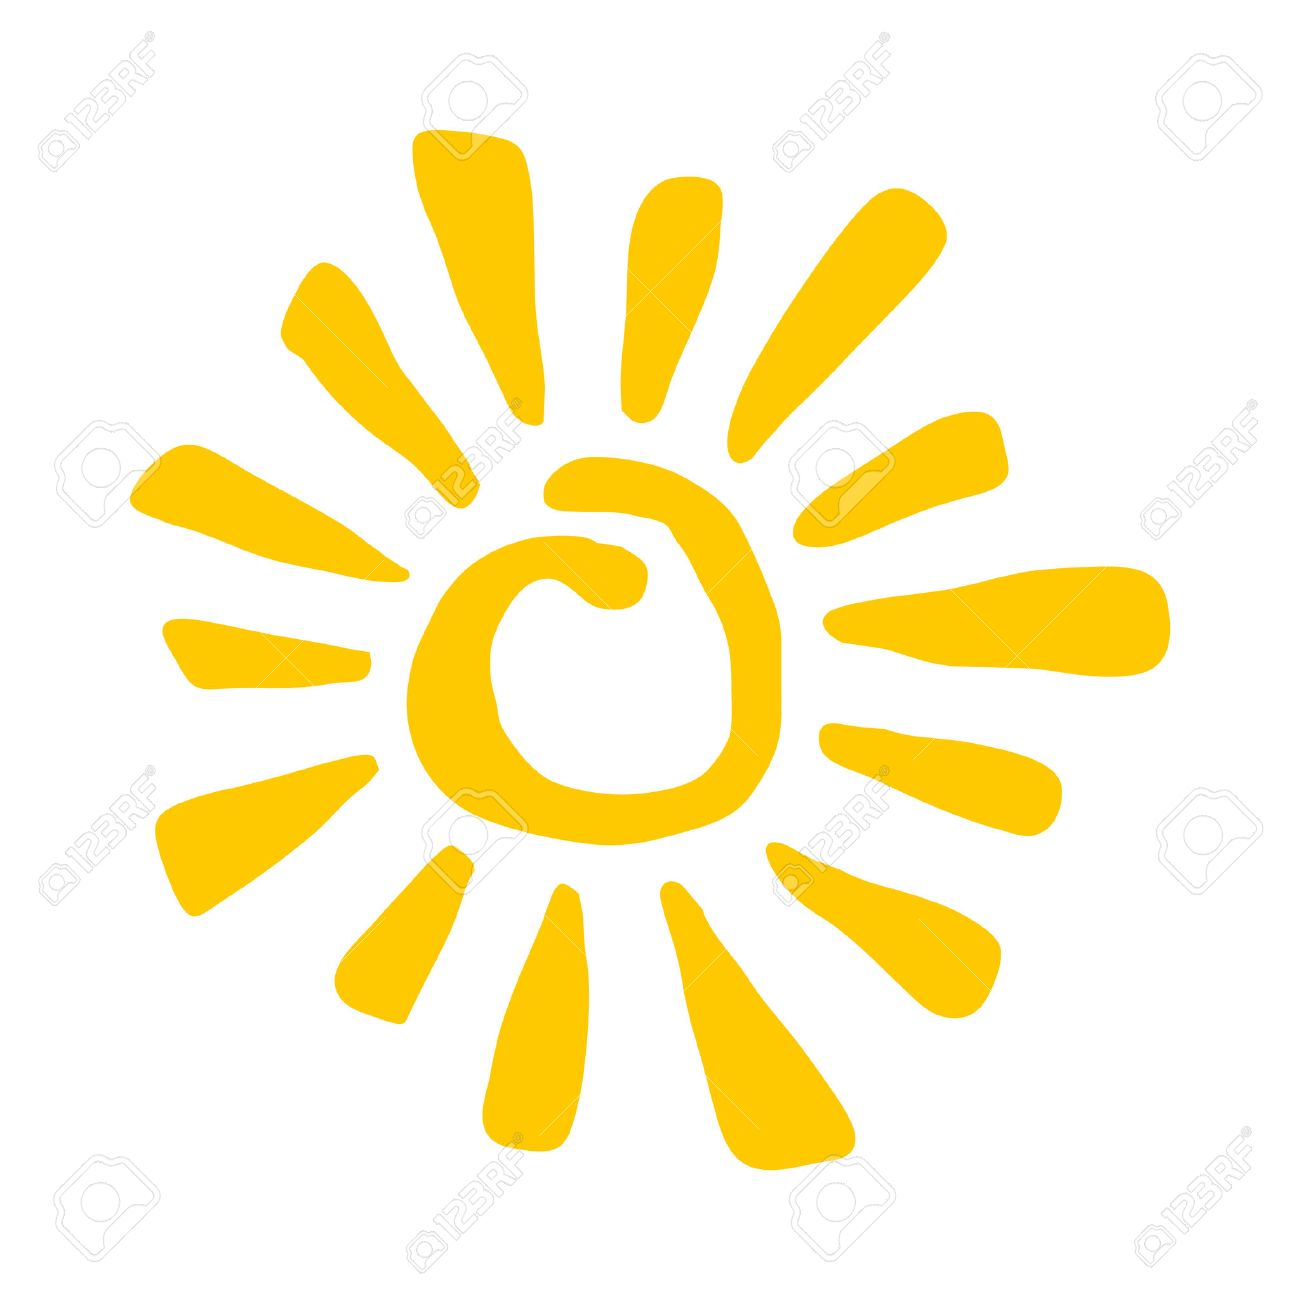 sun vector icon royalty free cliparts vectors and stock rh 123rf com vector sunflower images vector sunflower images